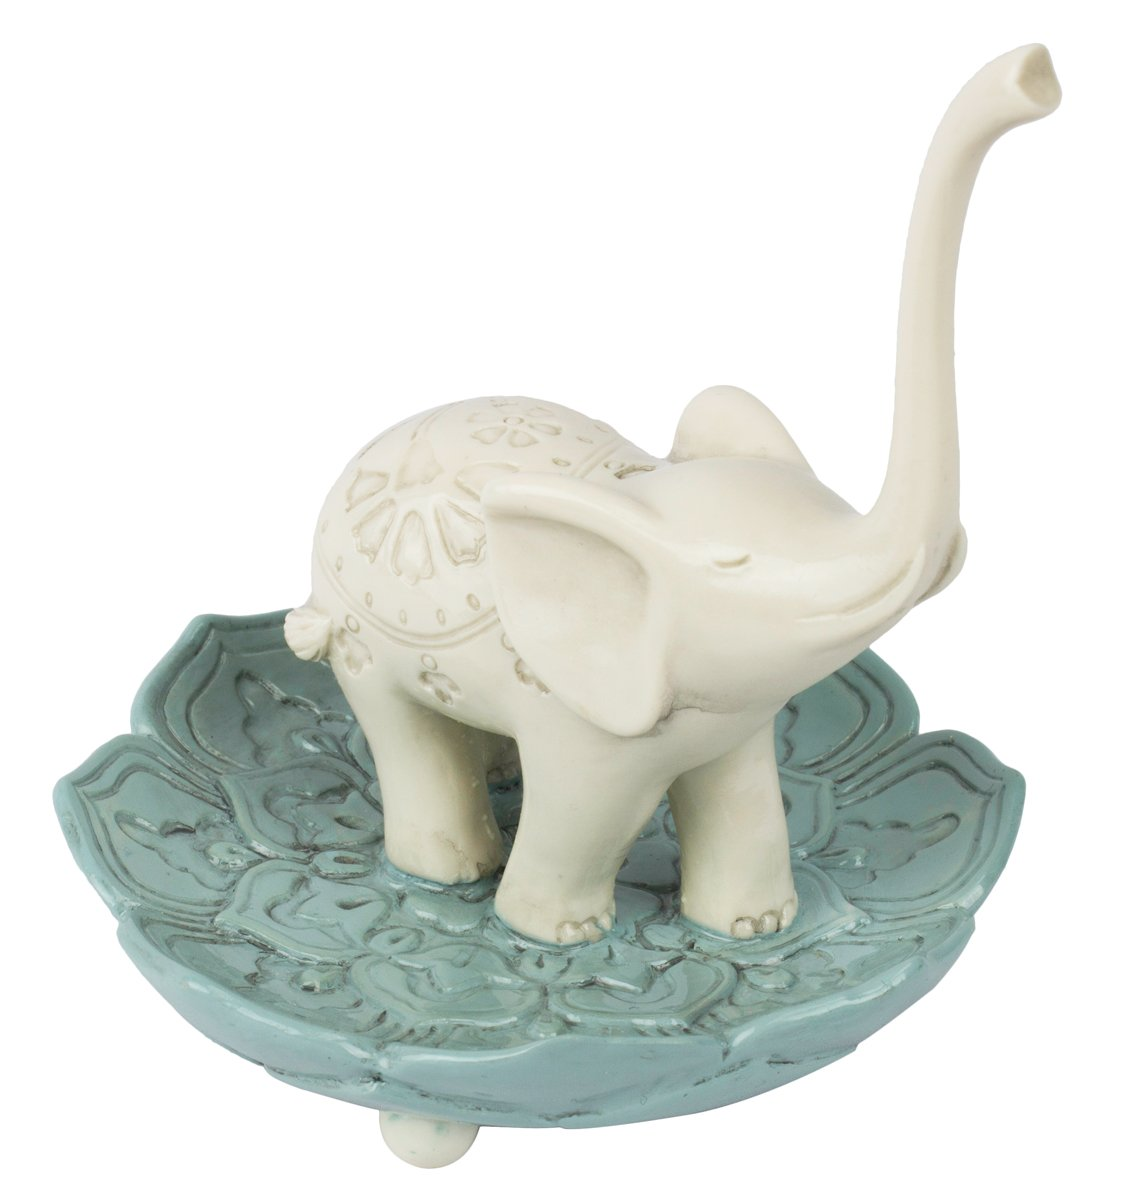 "Grasslands Road Resin Good Luck Elephant Jewelry Ring Holder, White / Teal, Medium, 3.5"" x 3.5"""